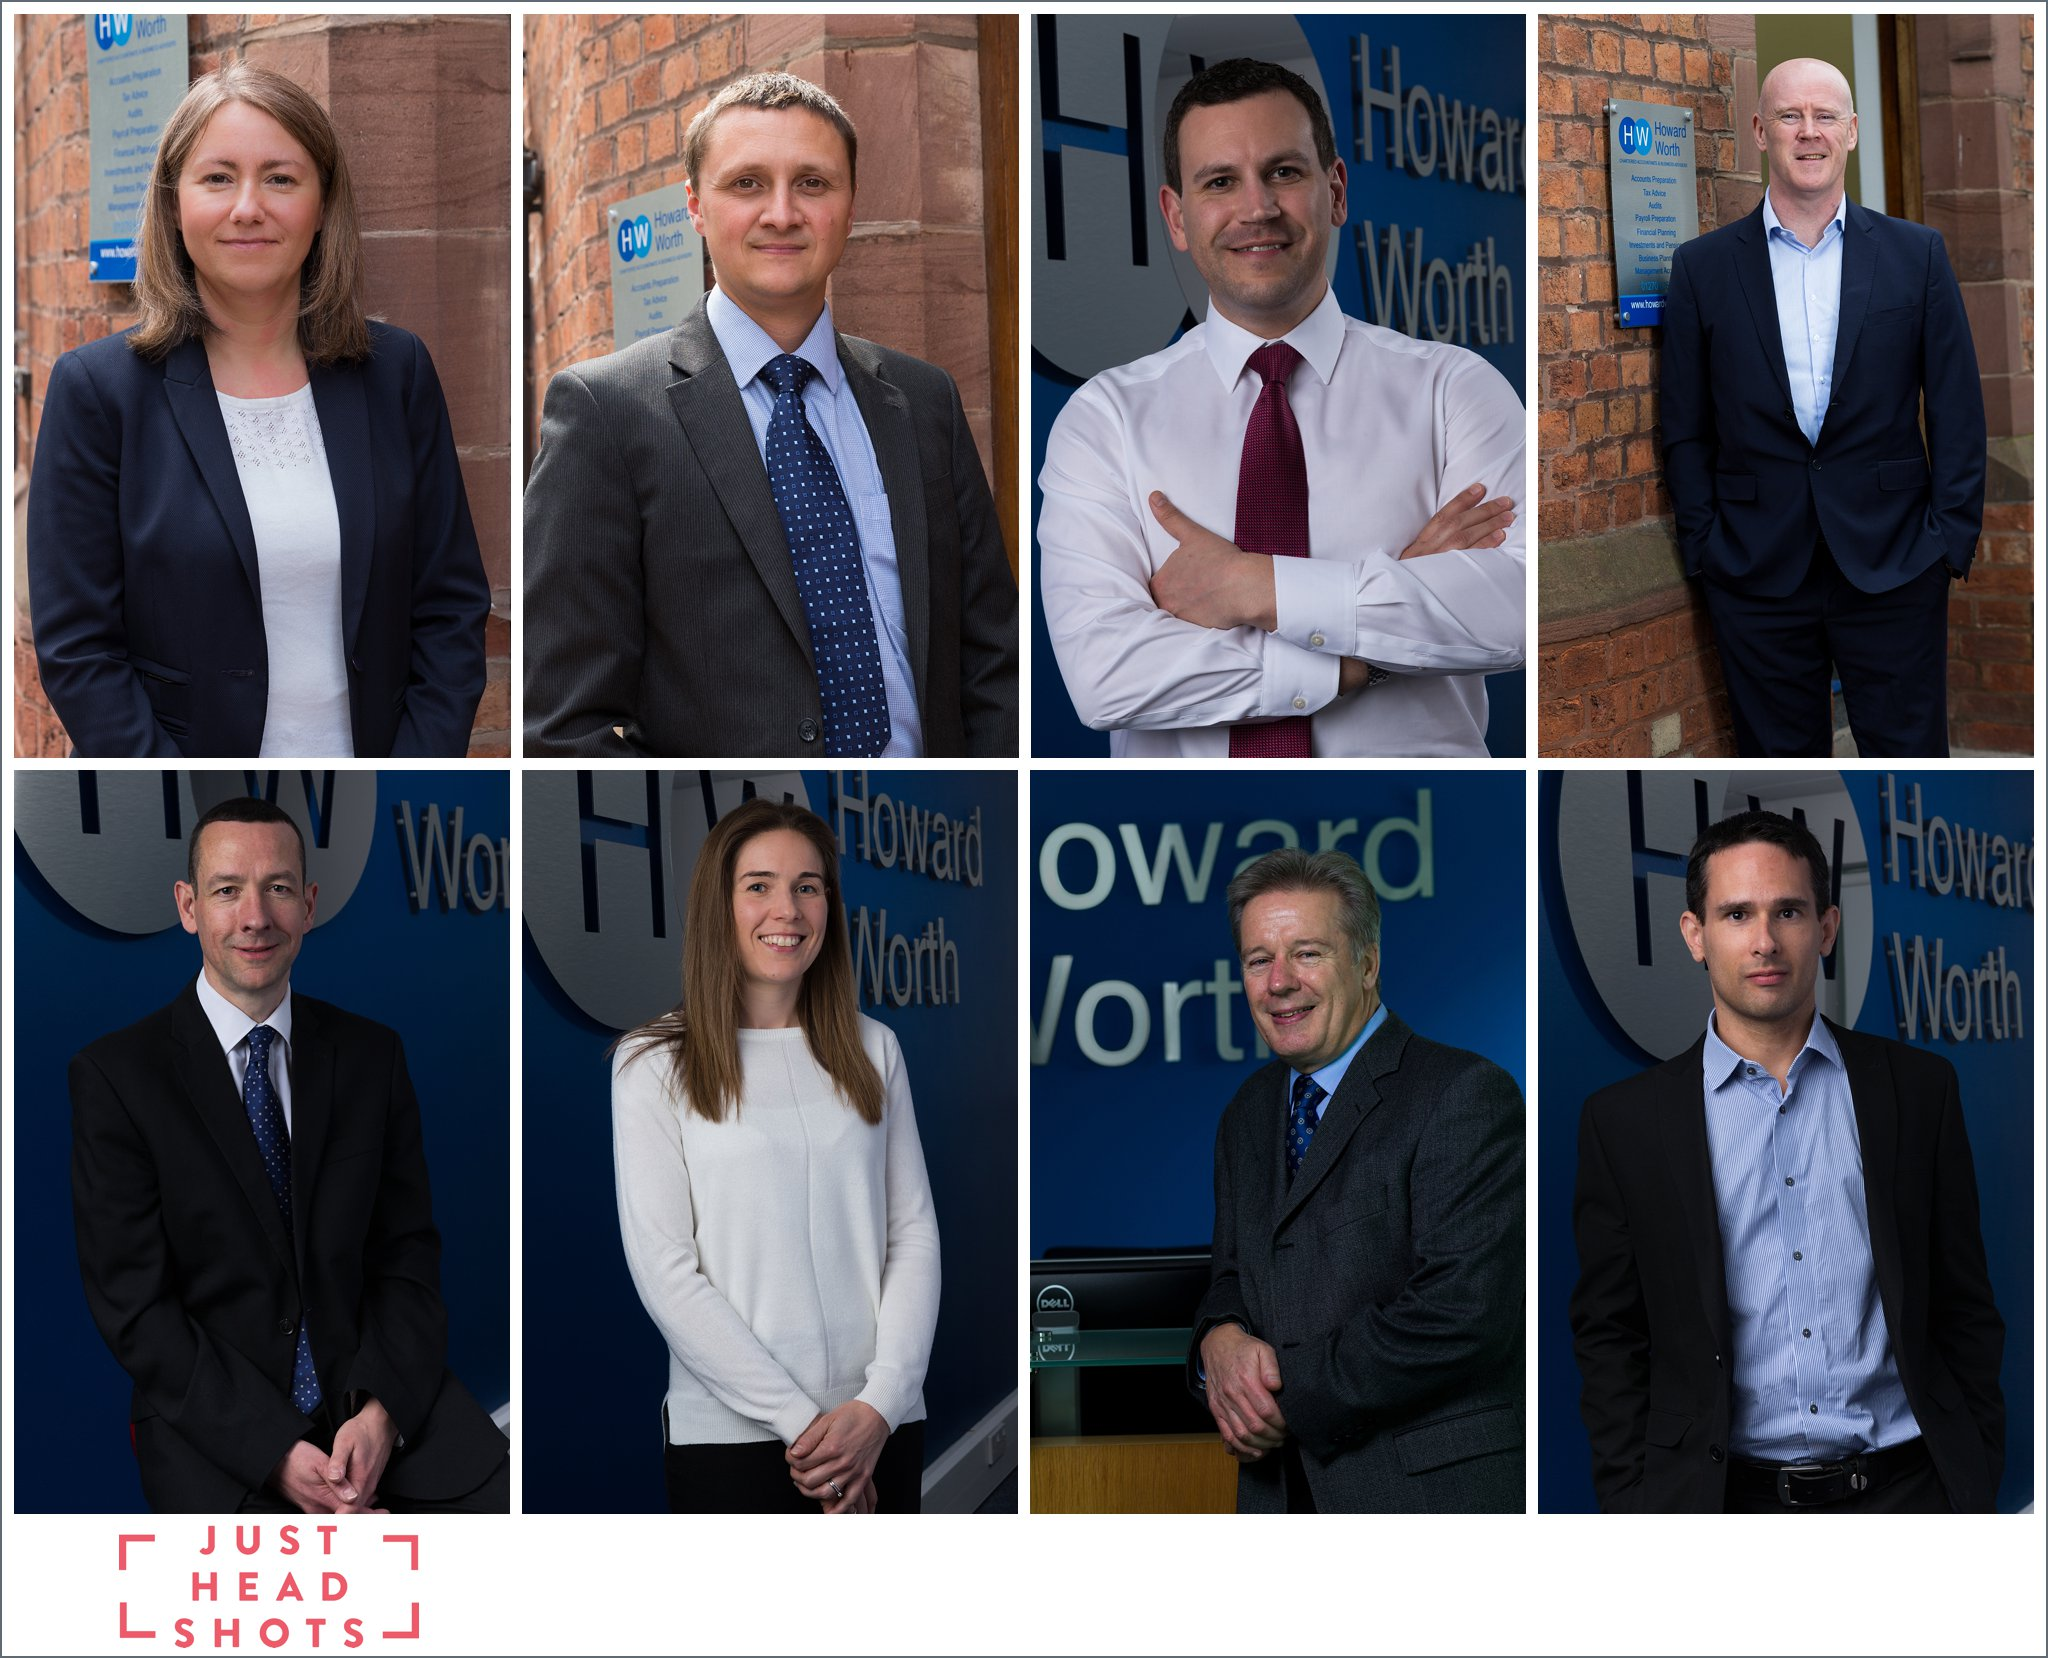 Environmental business portraits with company branding in the background